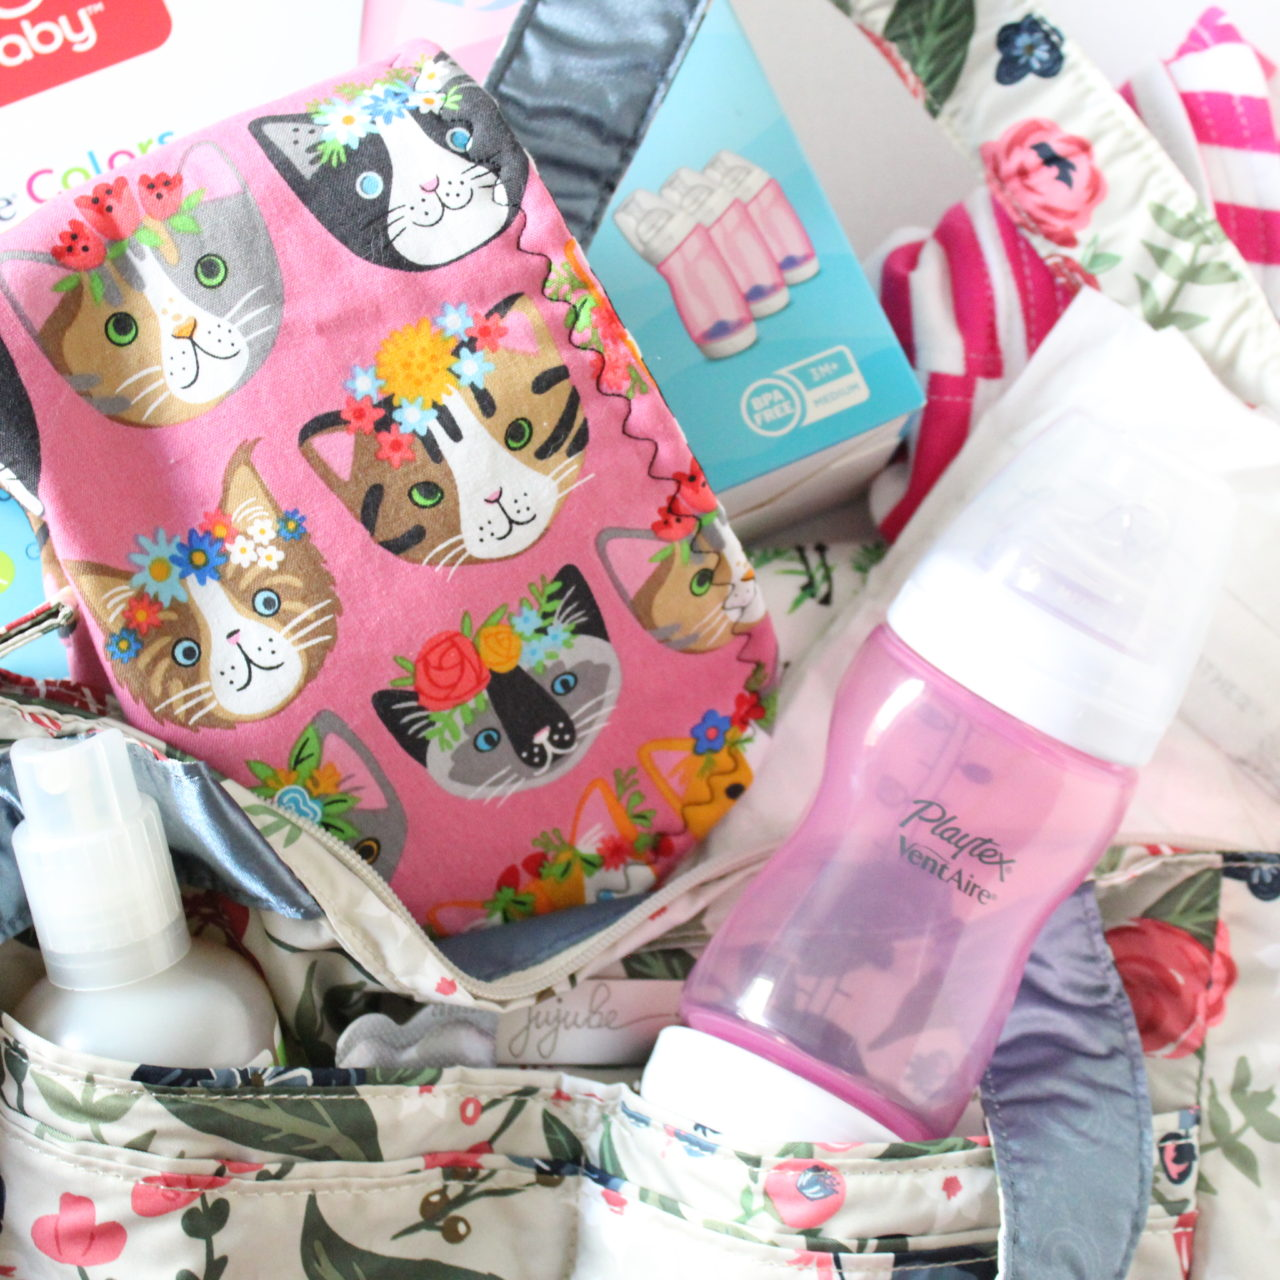 Pool bag essentials for baby